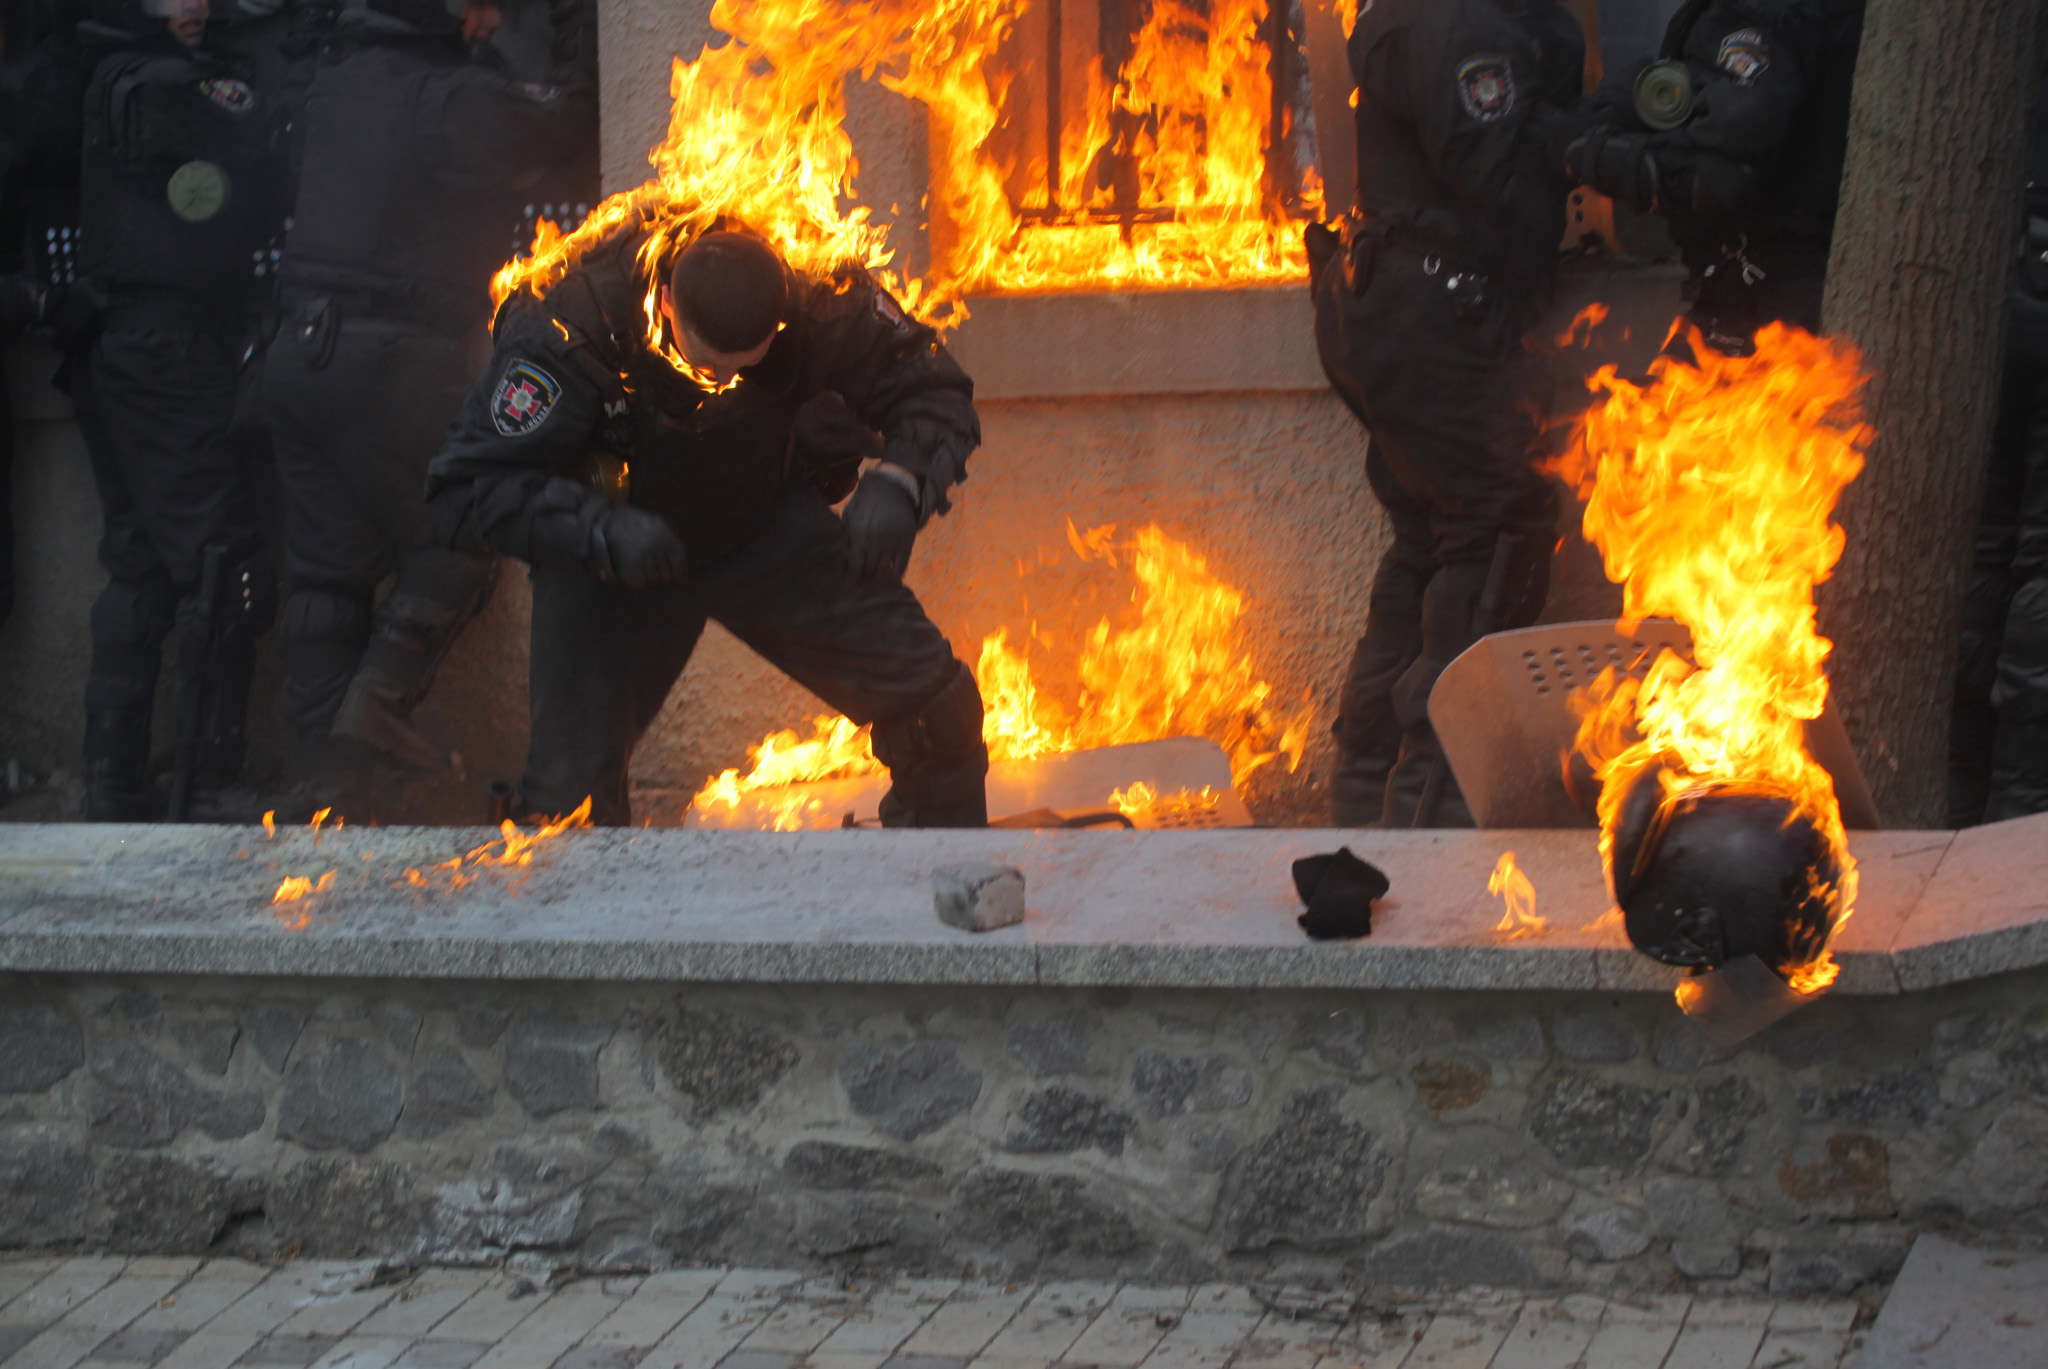 Anti-government protests in Ukraine...  KIEV, UKRAINE - JANUARY 20:  This handout photo released by Ukrainian Ministry of Internal Affairs shows burning members of the Ukrainian riot police due to the gasoline bombs hurled by anti-government protestors during the clashes in central Kiev, Ukraine, January 20, 2014. At least 61 people were admitted to hospital and 100 police officers wounded after violent clashes broke out when thousands marched on Kiev's streets to demonstrate against a recently passed anti-protest legislation. (Photo by Ukrainian Ministry of Internal Affairs/Anadolu Agency/Getty Images)